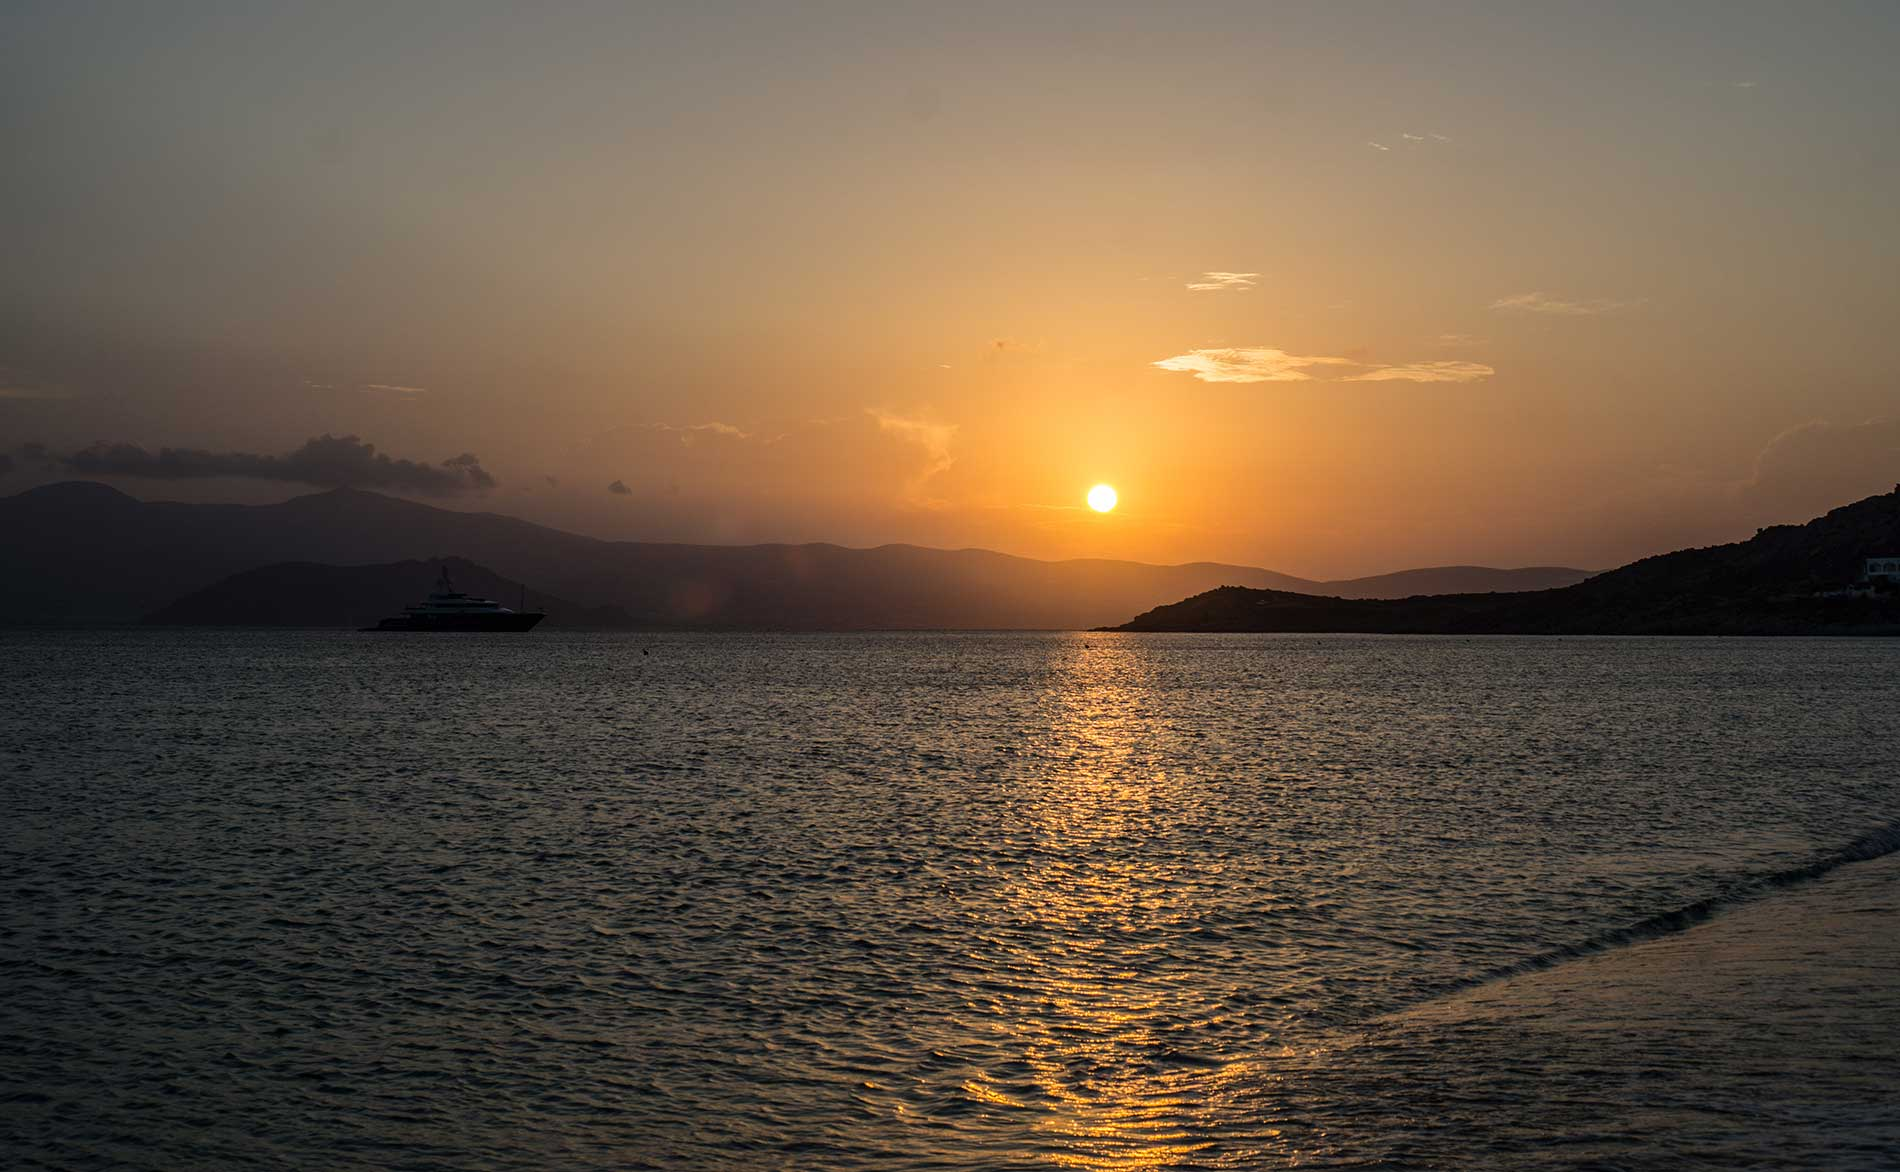 Sunset over Naxos, Greece.